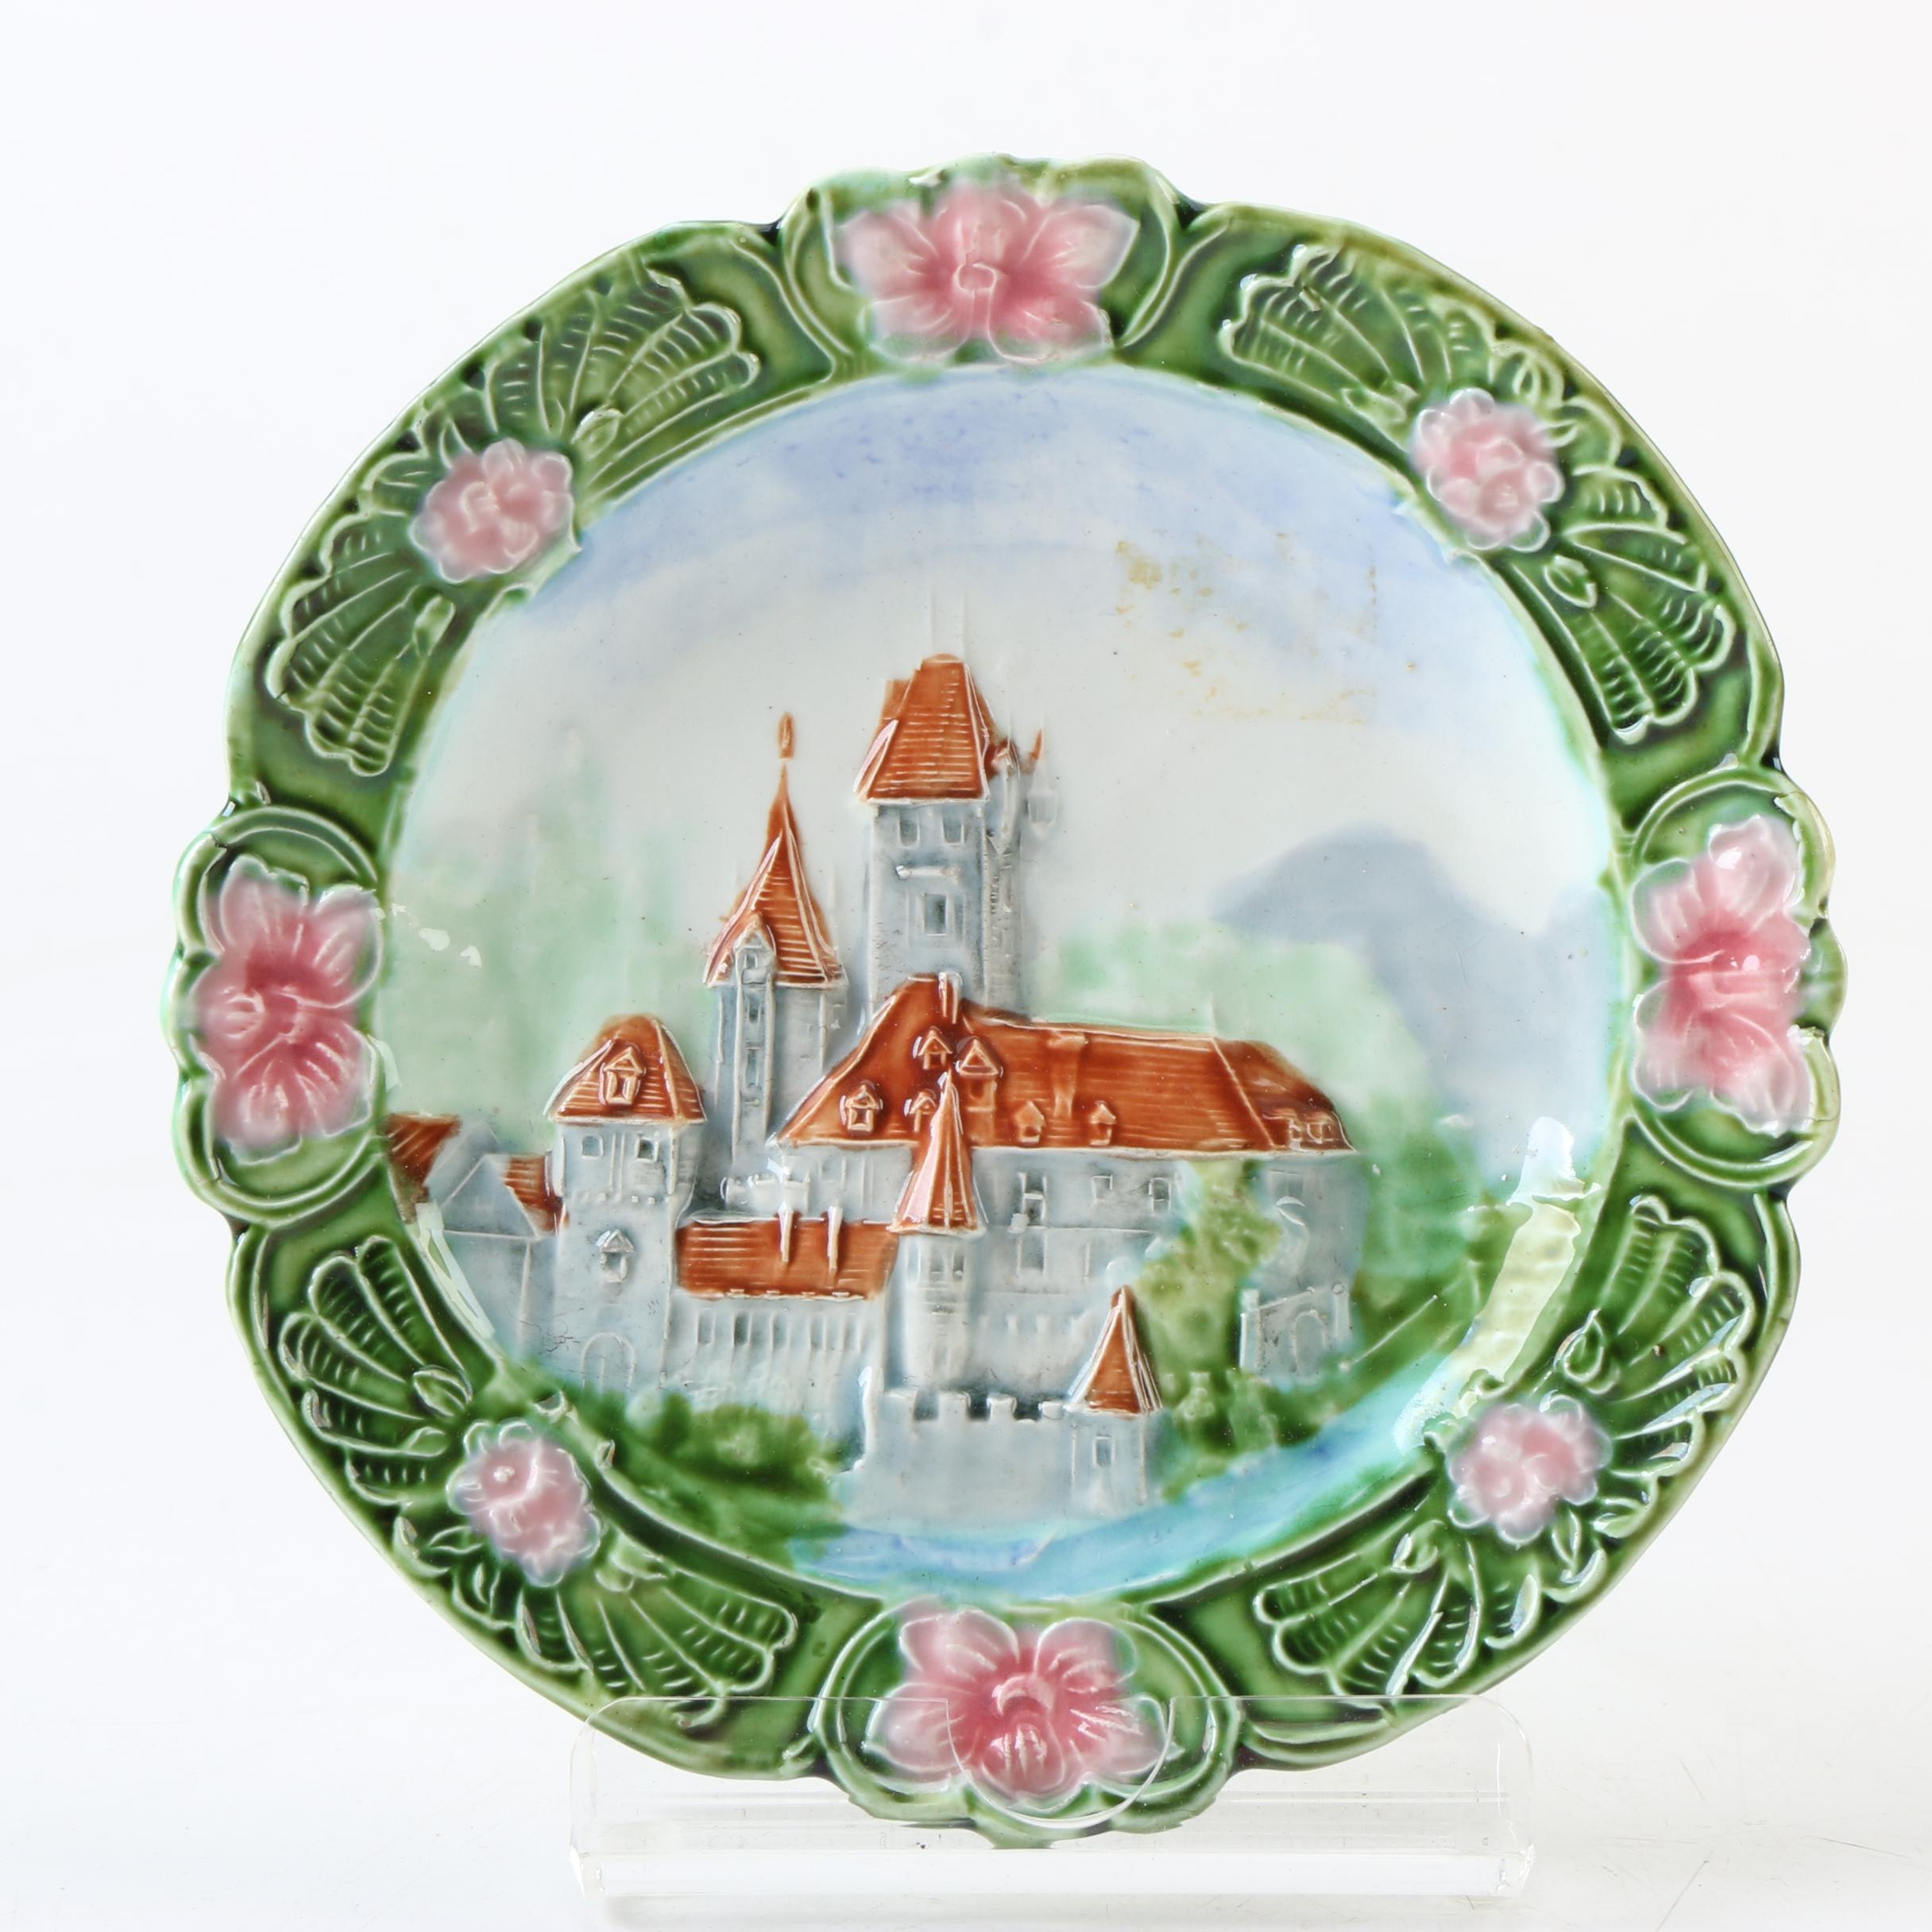 Antique German Majolica Plate with Castle